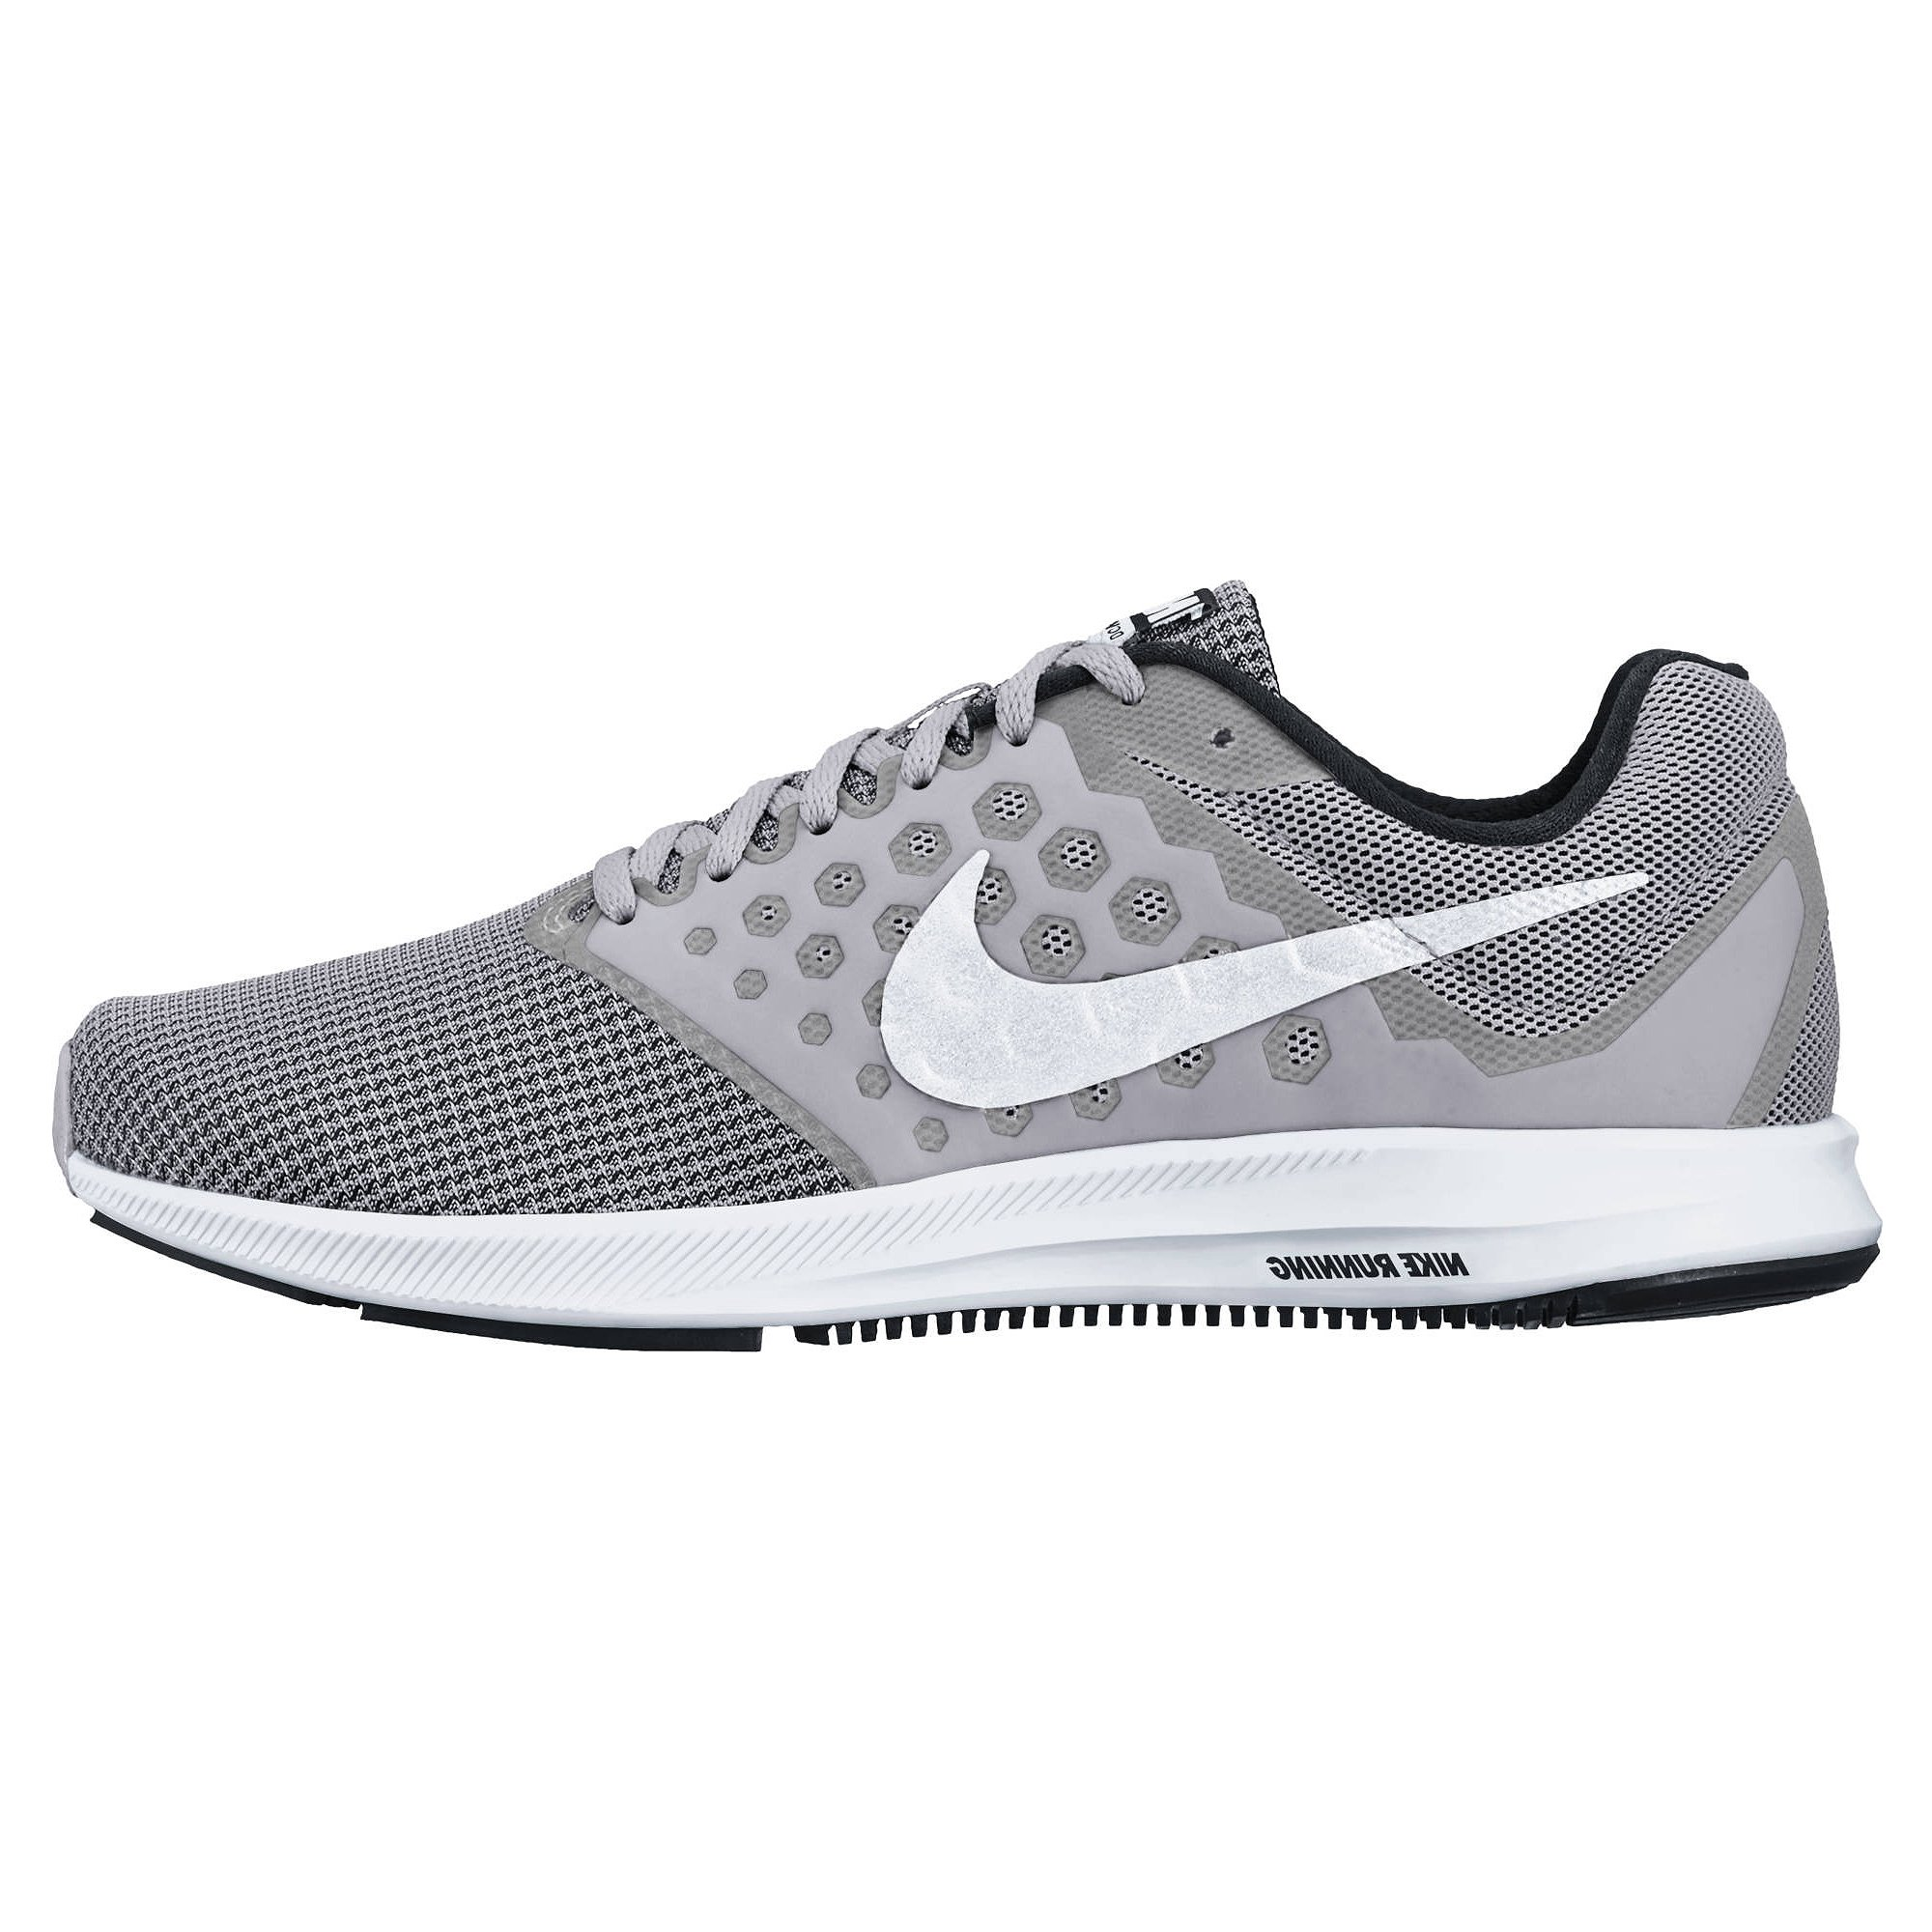 016b96a62e08 Galleon - NIKE Mens Downshifter 7 Wolf Grey White Black Size 6